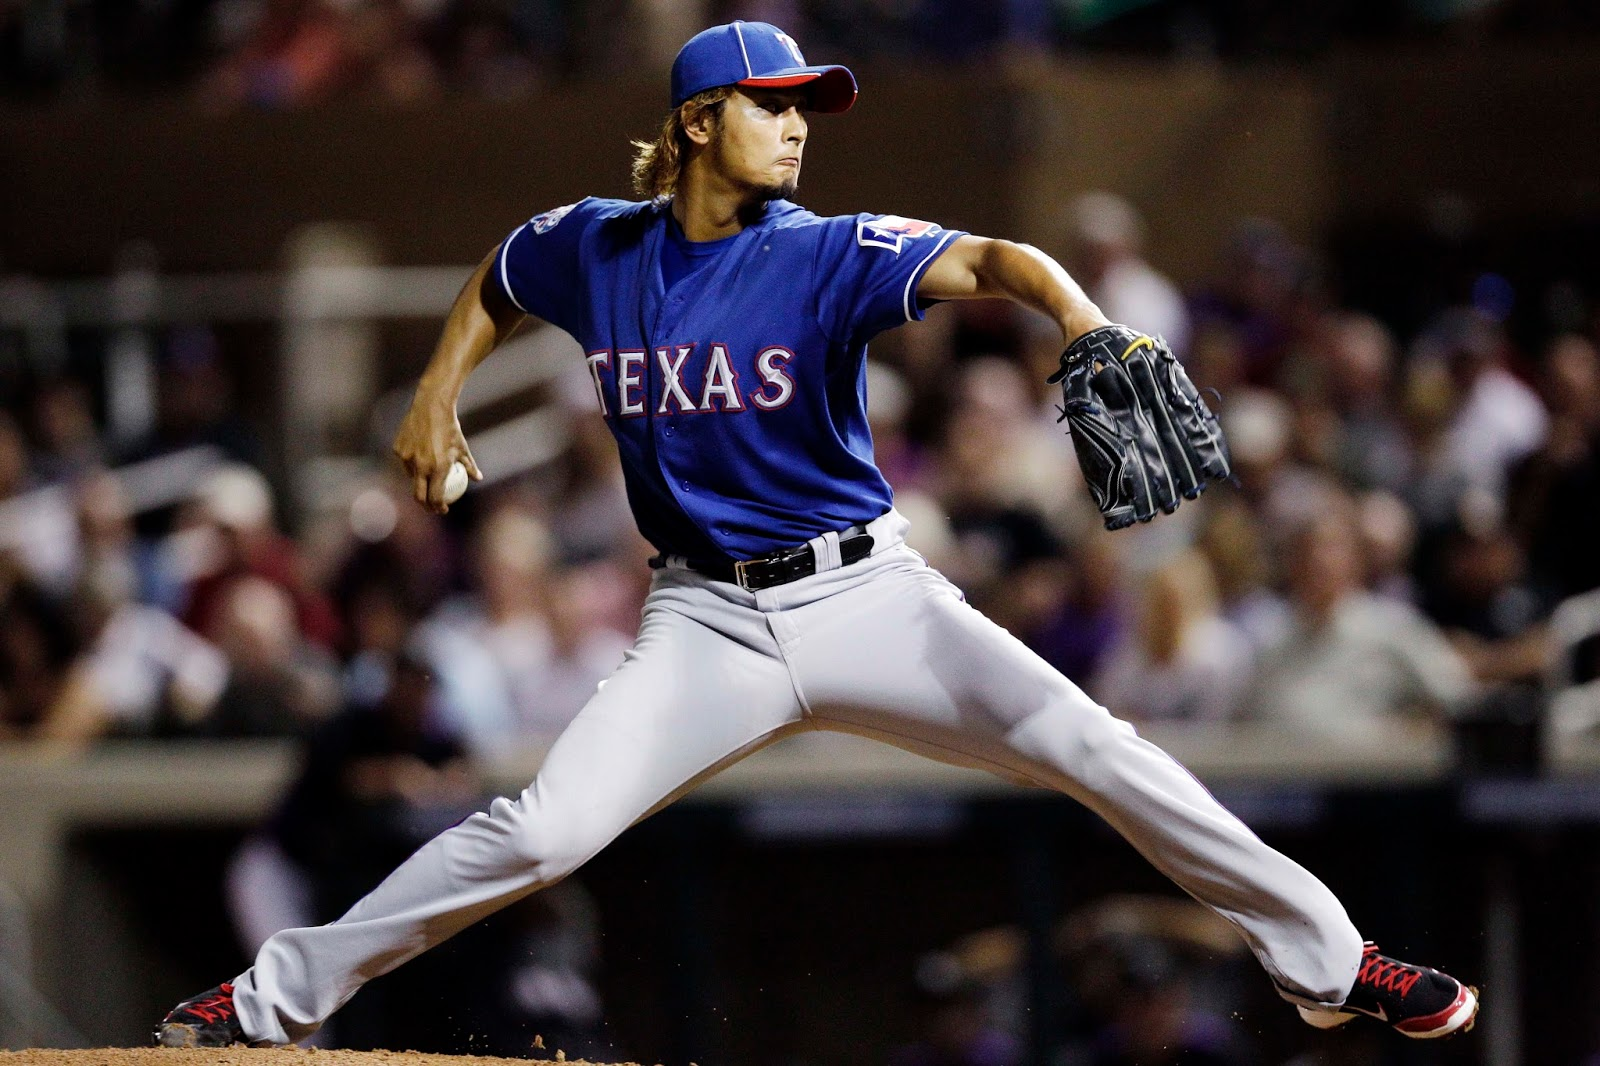 Yu Darvish will add yet more firepower to an already electric Dodgers pitching core.